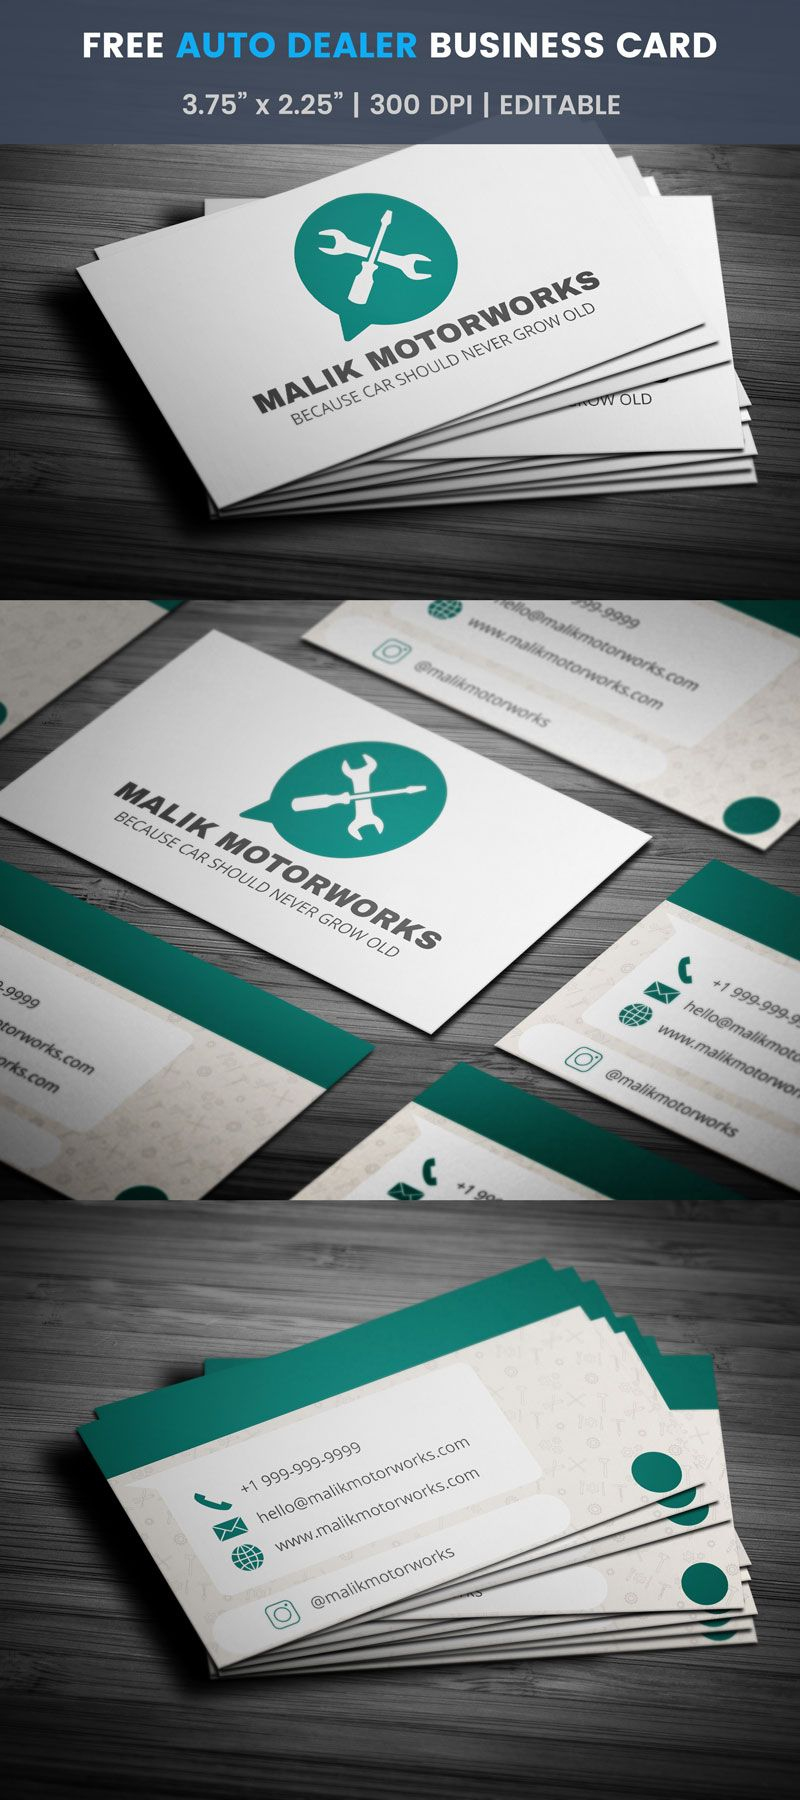 Whatsapp Themed Auto Dealer Business Card Full Preview Free